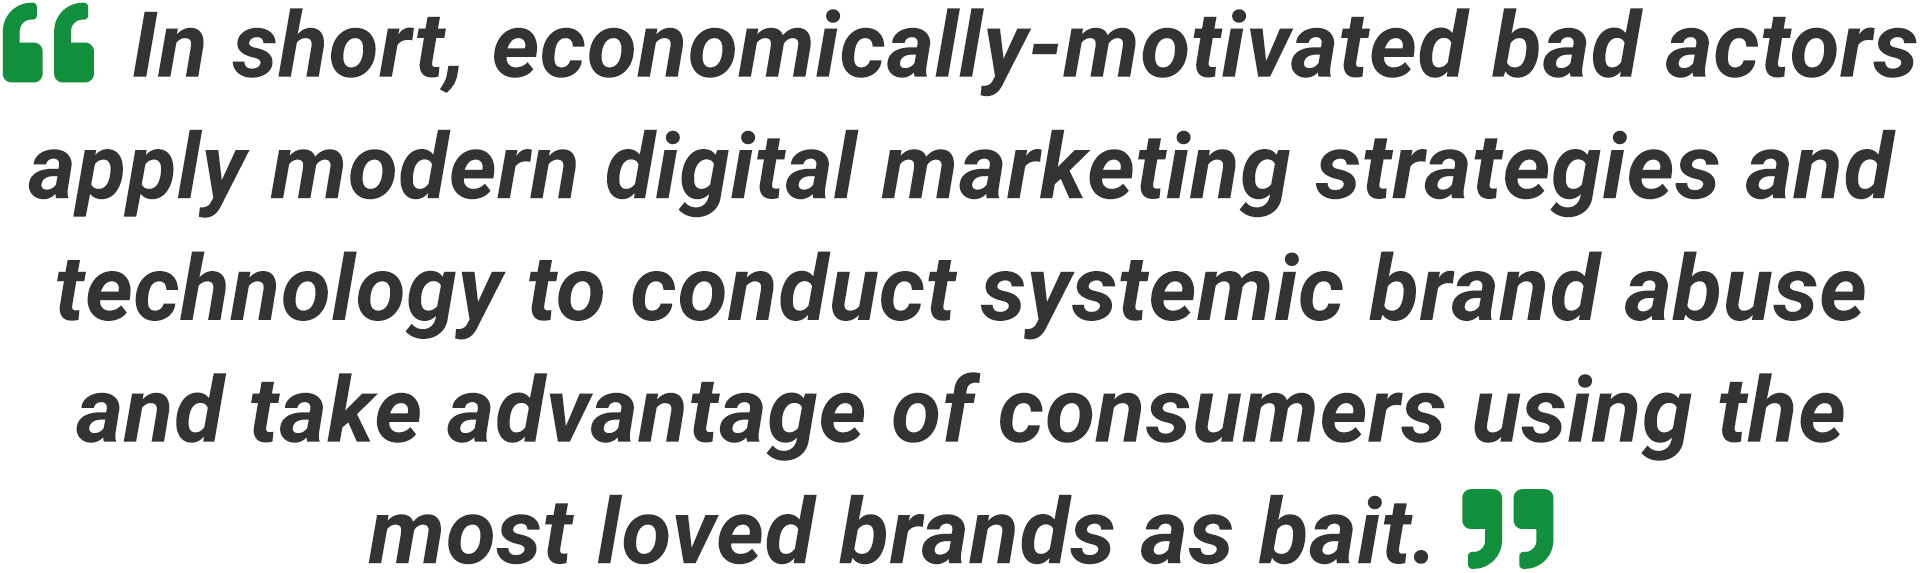 Brand Abuse is Systemic: The Role of Networks in Brand Abuse